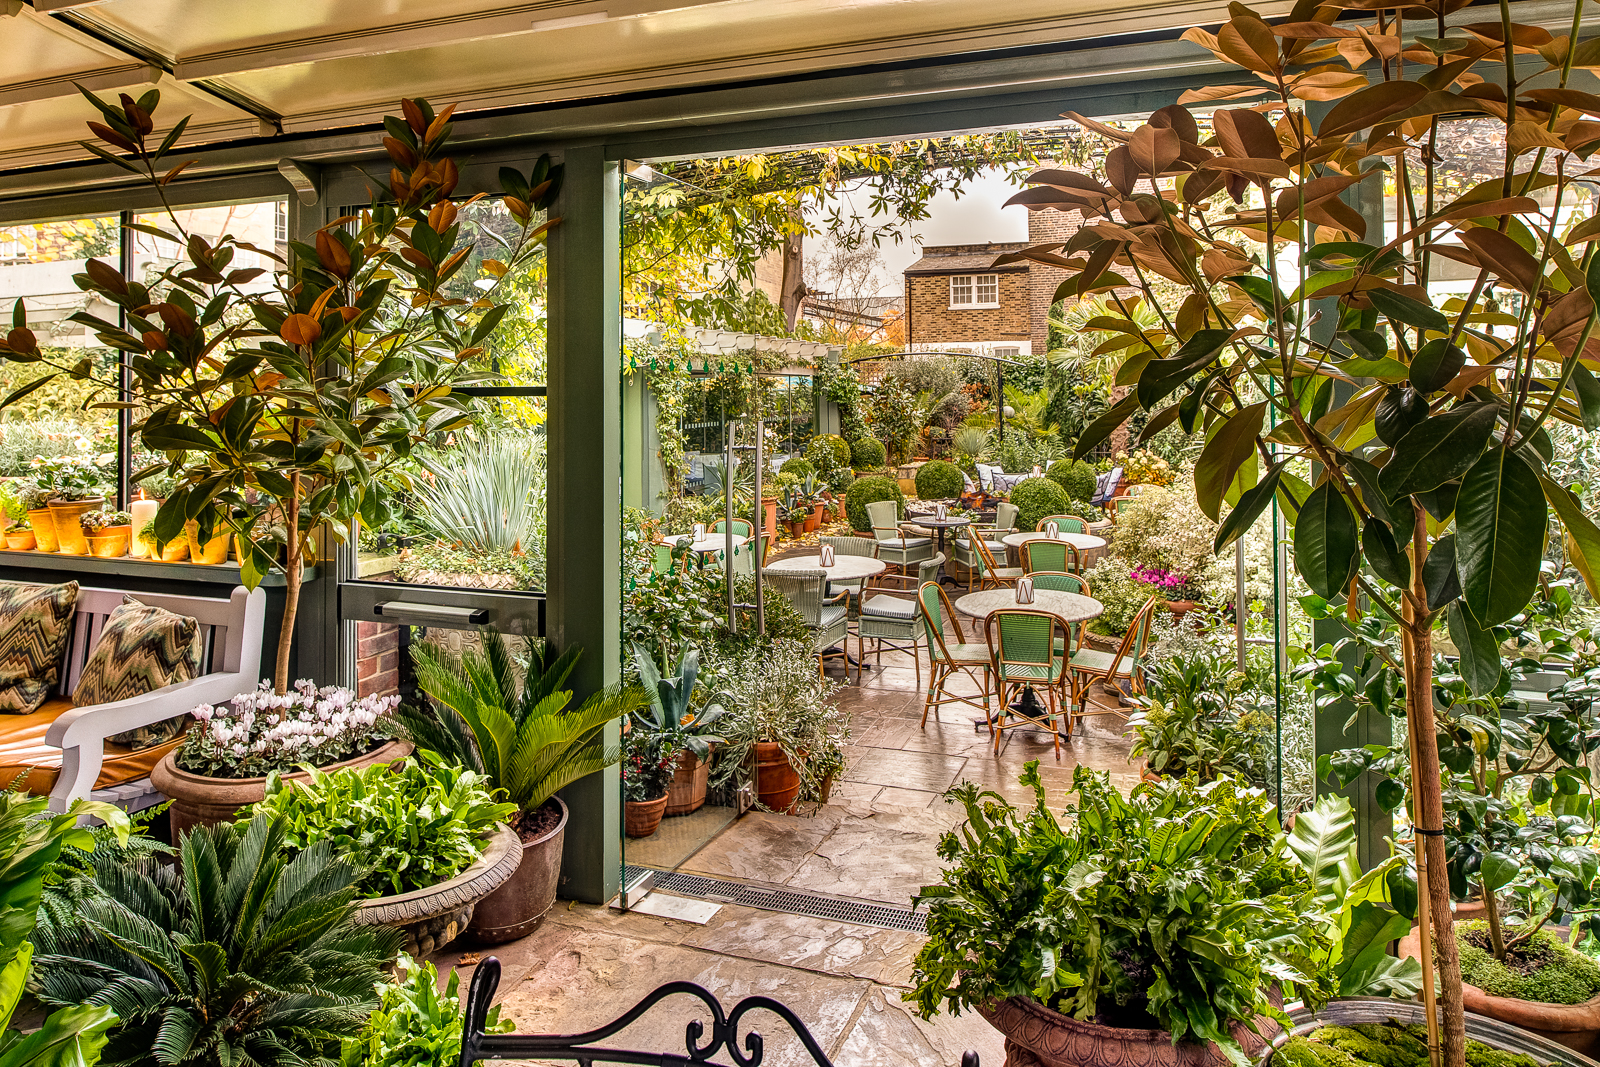 Discover Credit Card Sign In >> The Ivy Chelsea Garden - Todott